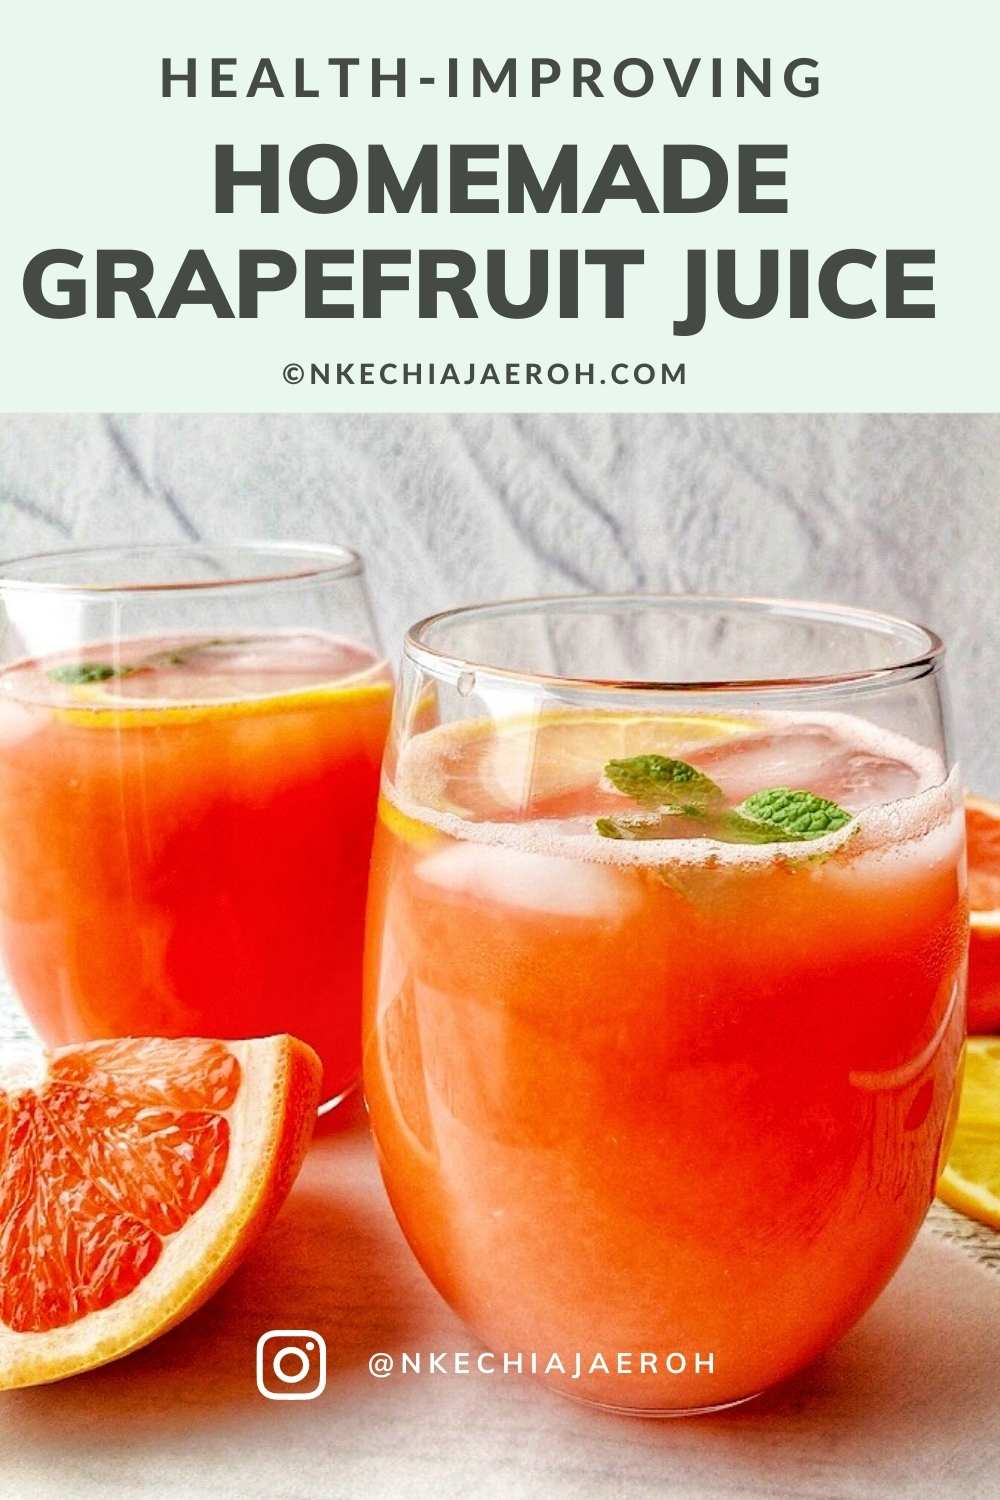 Grapefruit juice is juice from grapefruit; rich in antioxidants, healthy nutrients, and minerals. This refreshing homemade grapefruit juice is vegan, gluten-free, dairy-free, and nut-free! Why make Grapefruit juice at home? Homemade grapefruit juice is the way to consume grapefruit juice; this is because homemade grapefruit juice has no added sugars, artificial preservatives, or additives. Always best to make your foods yourself!